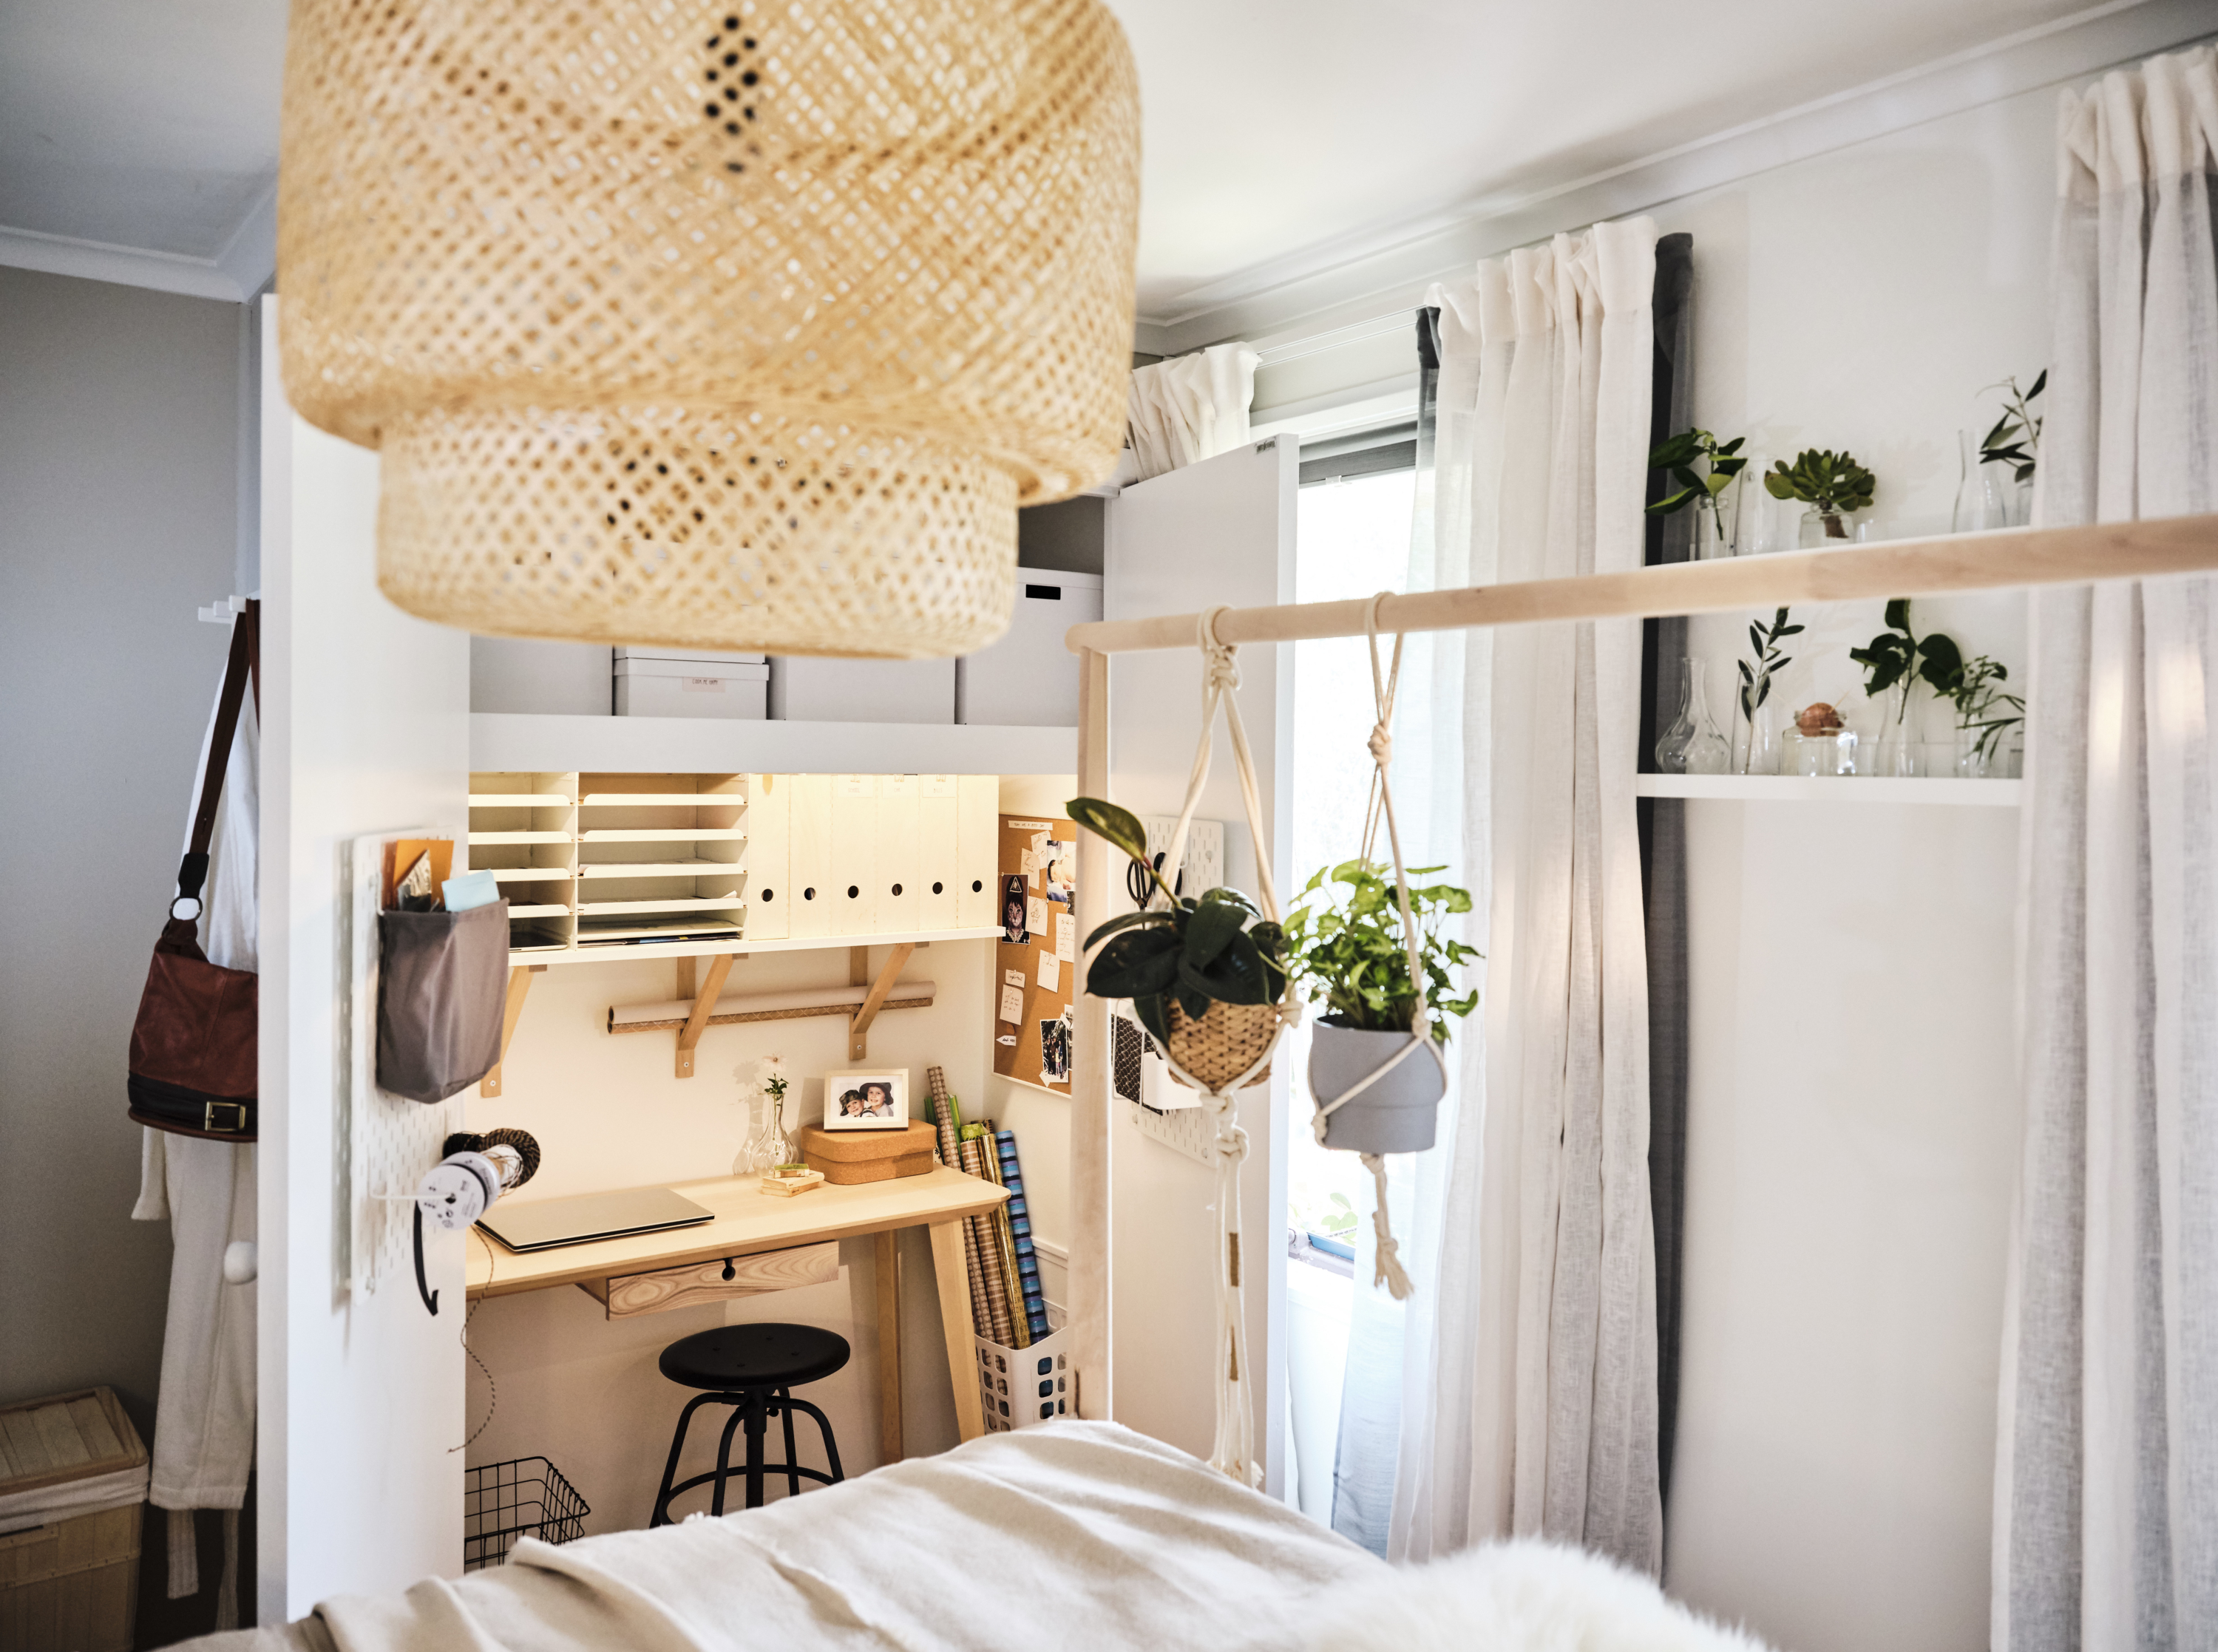 IKEA bedroom makeover turns wardrobe into office nook - The